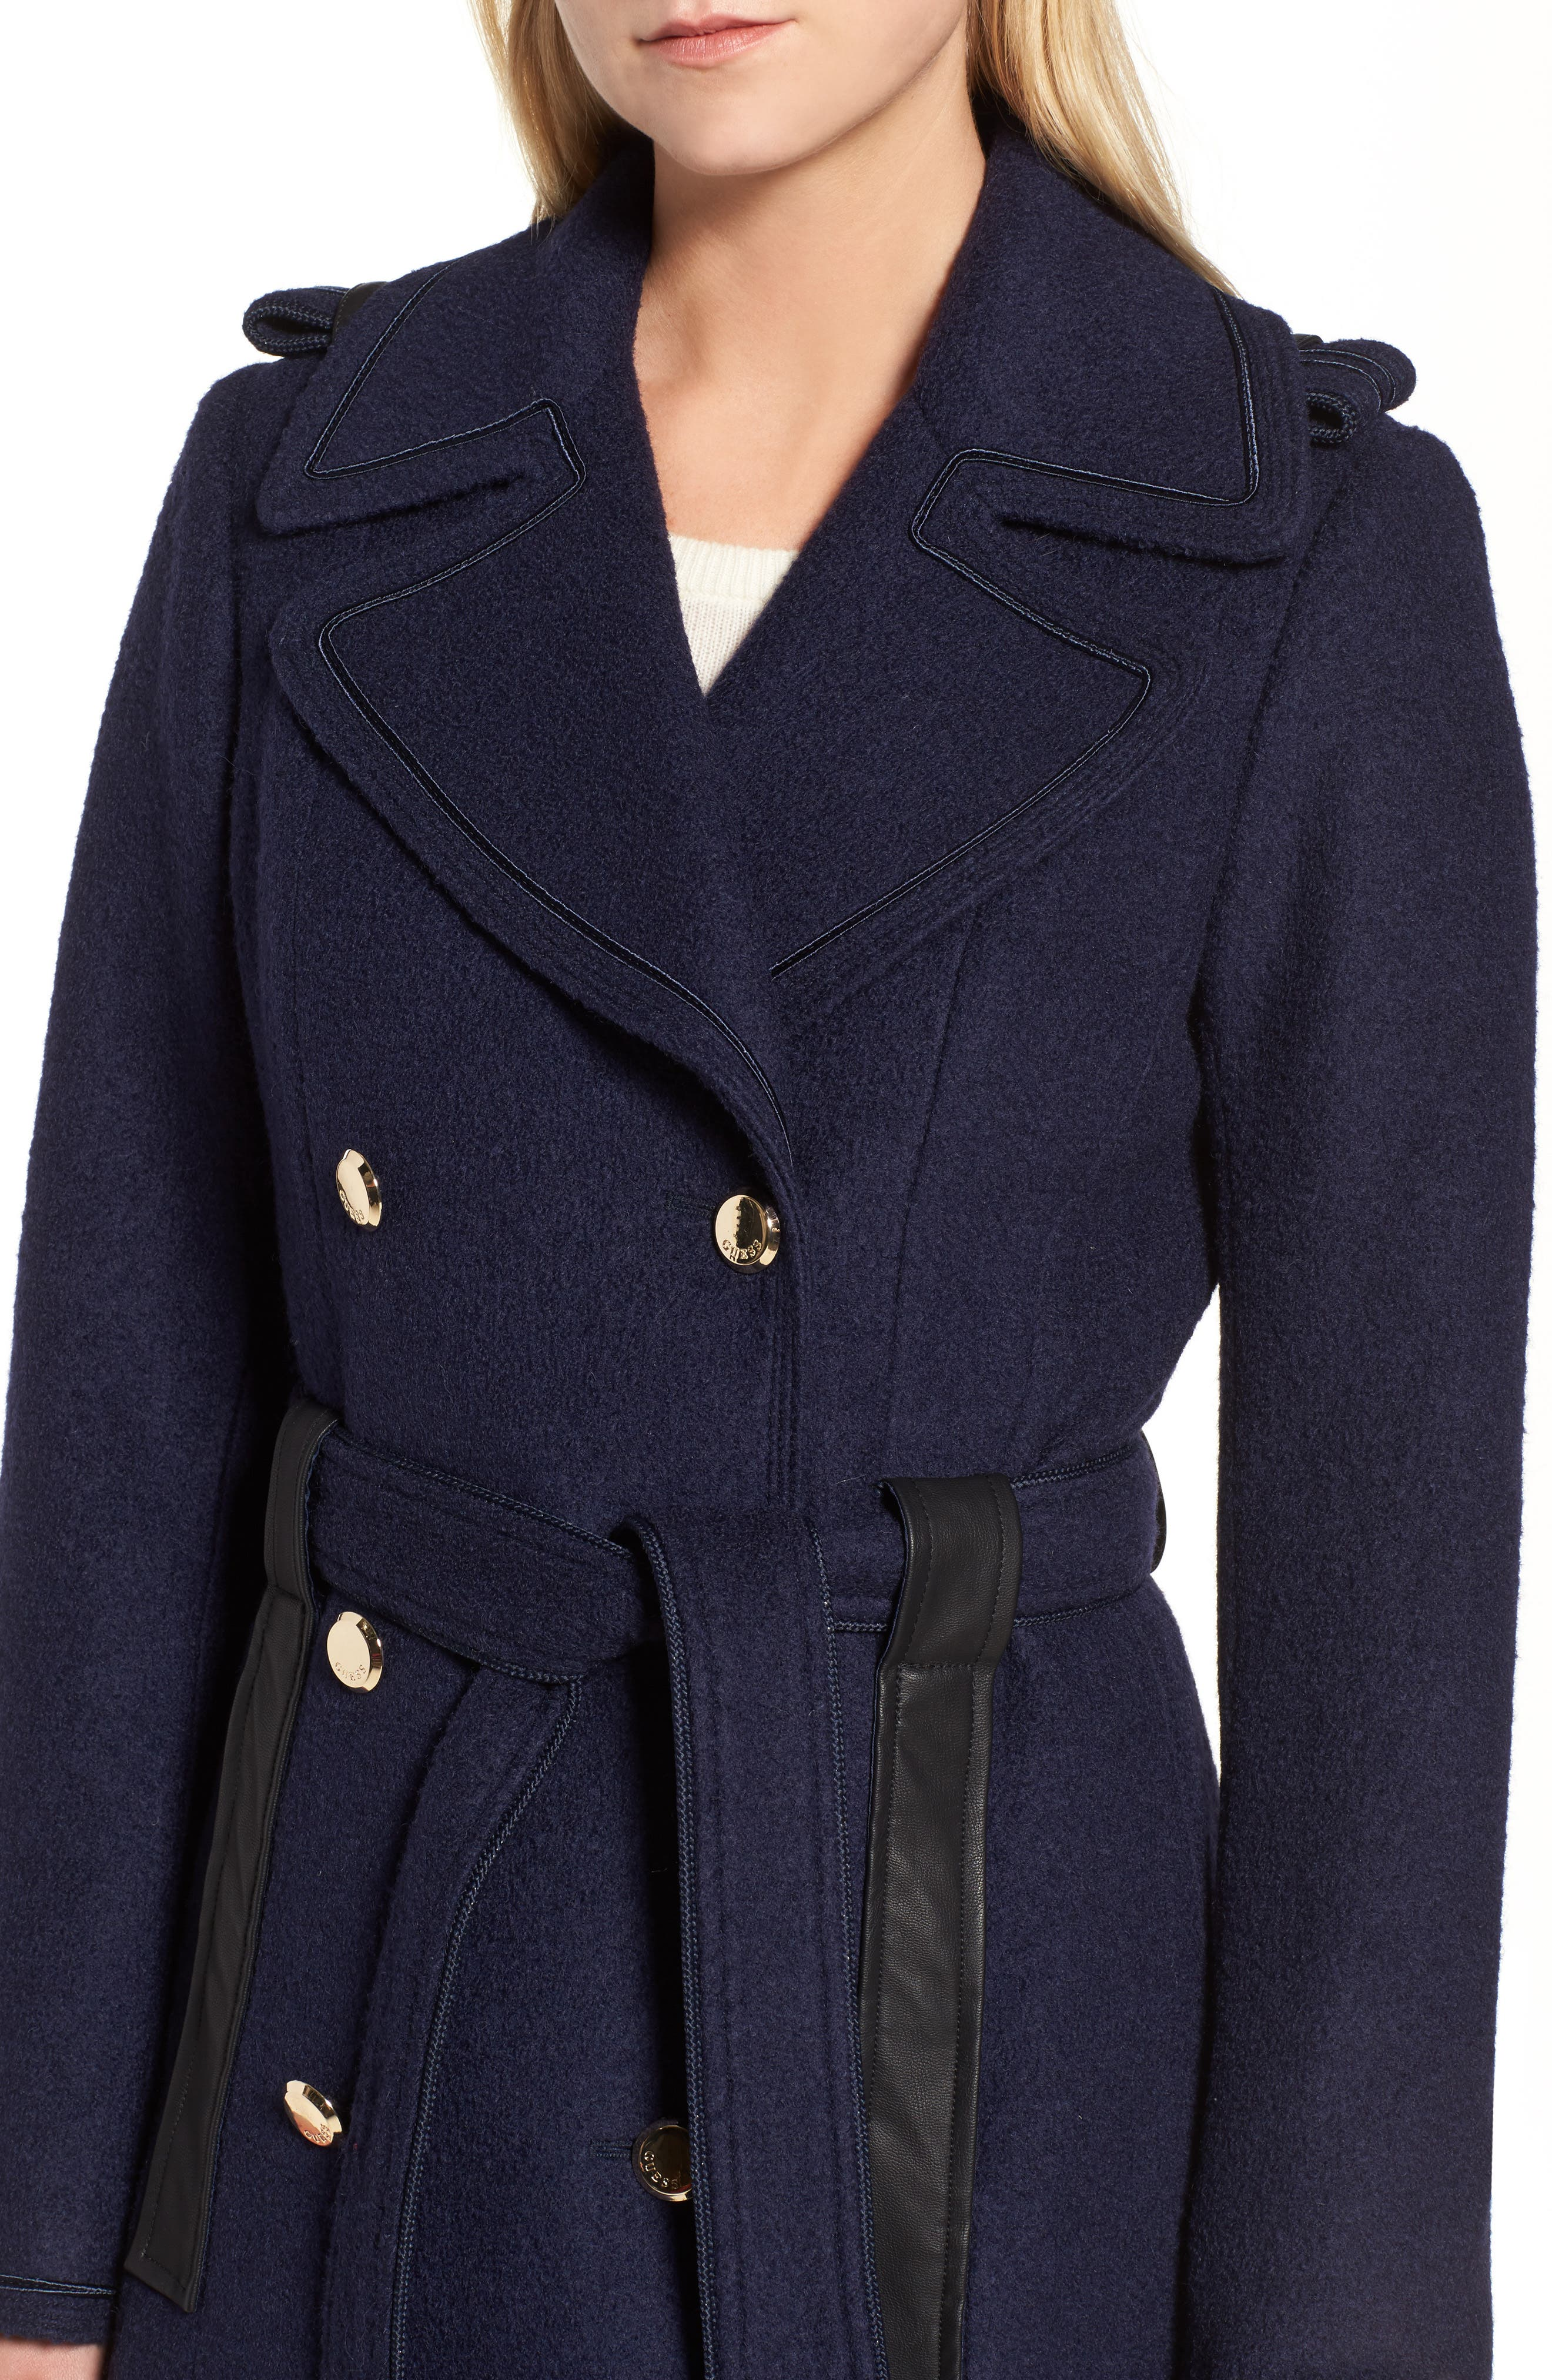 Boiled Wool Trench Coat,                             Alternate thumbnail 4, color,                             410